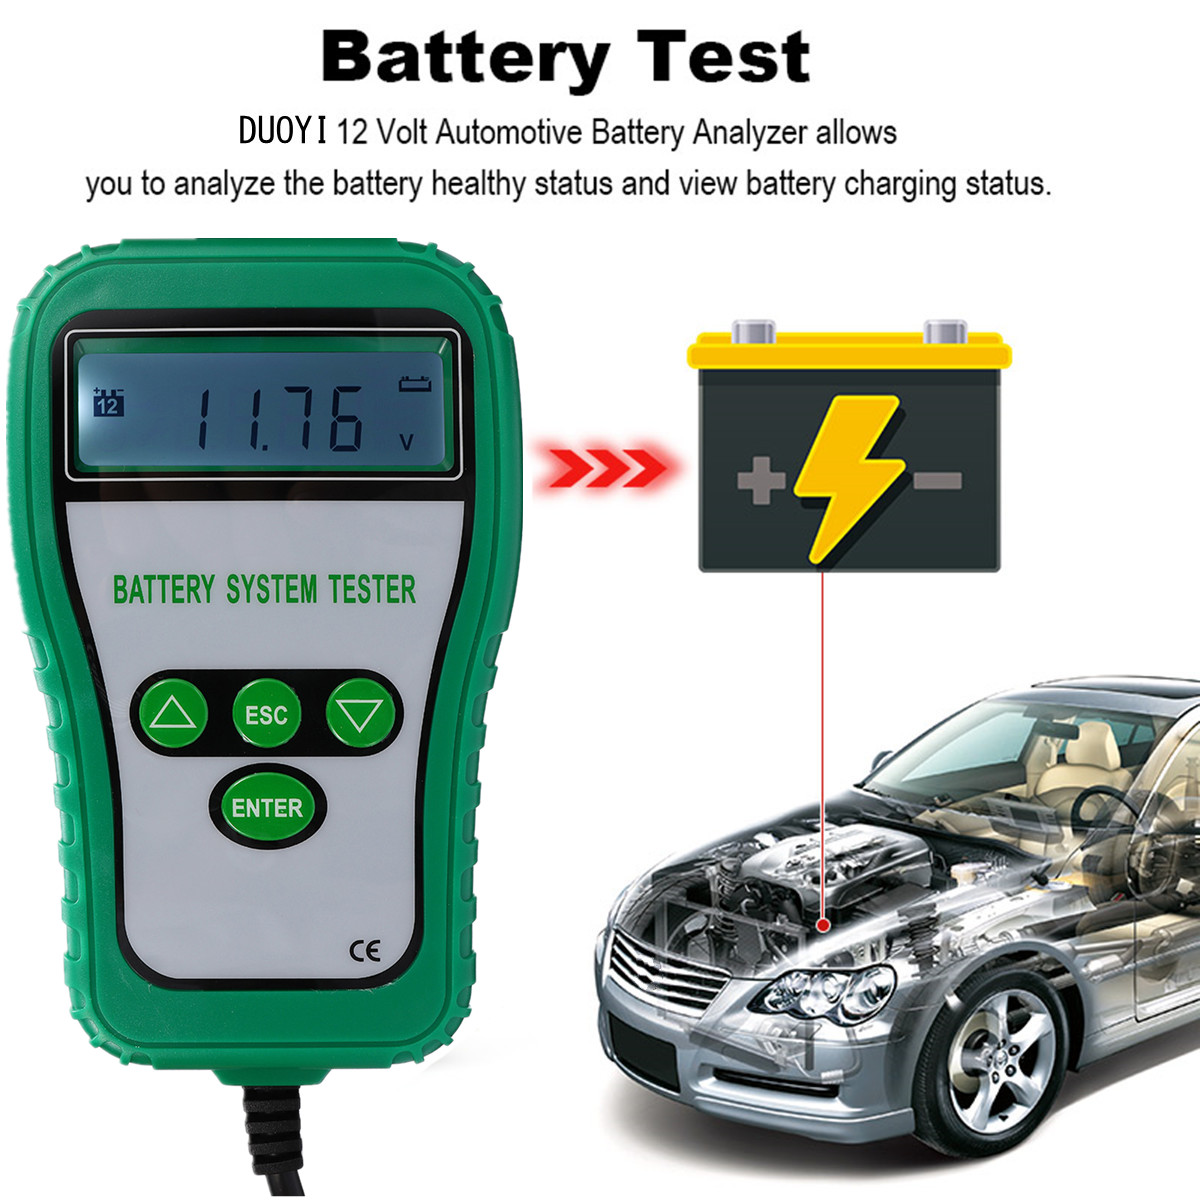 12V LCD Digital Battery Tester Analyzer Alternator Battery System Tester Cranking Amps Battery Resistance Voltage Life Analysis motopower grey 12v smart digital battery tester voltmeter alternator analyzer with lcd and led display for car motorcycle boat